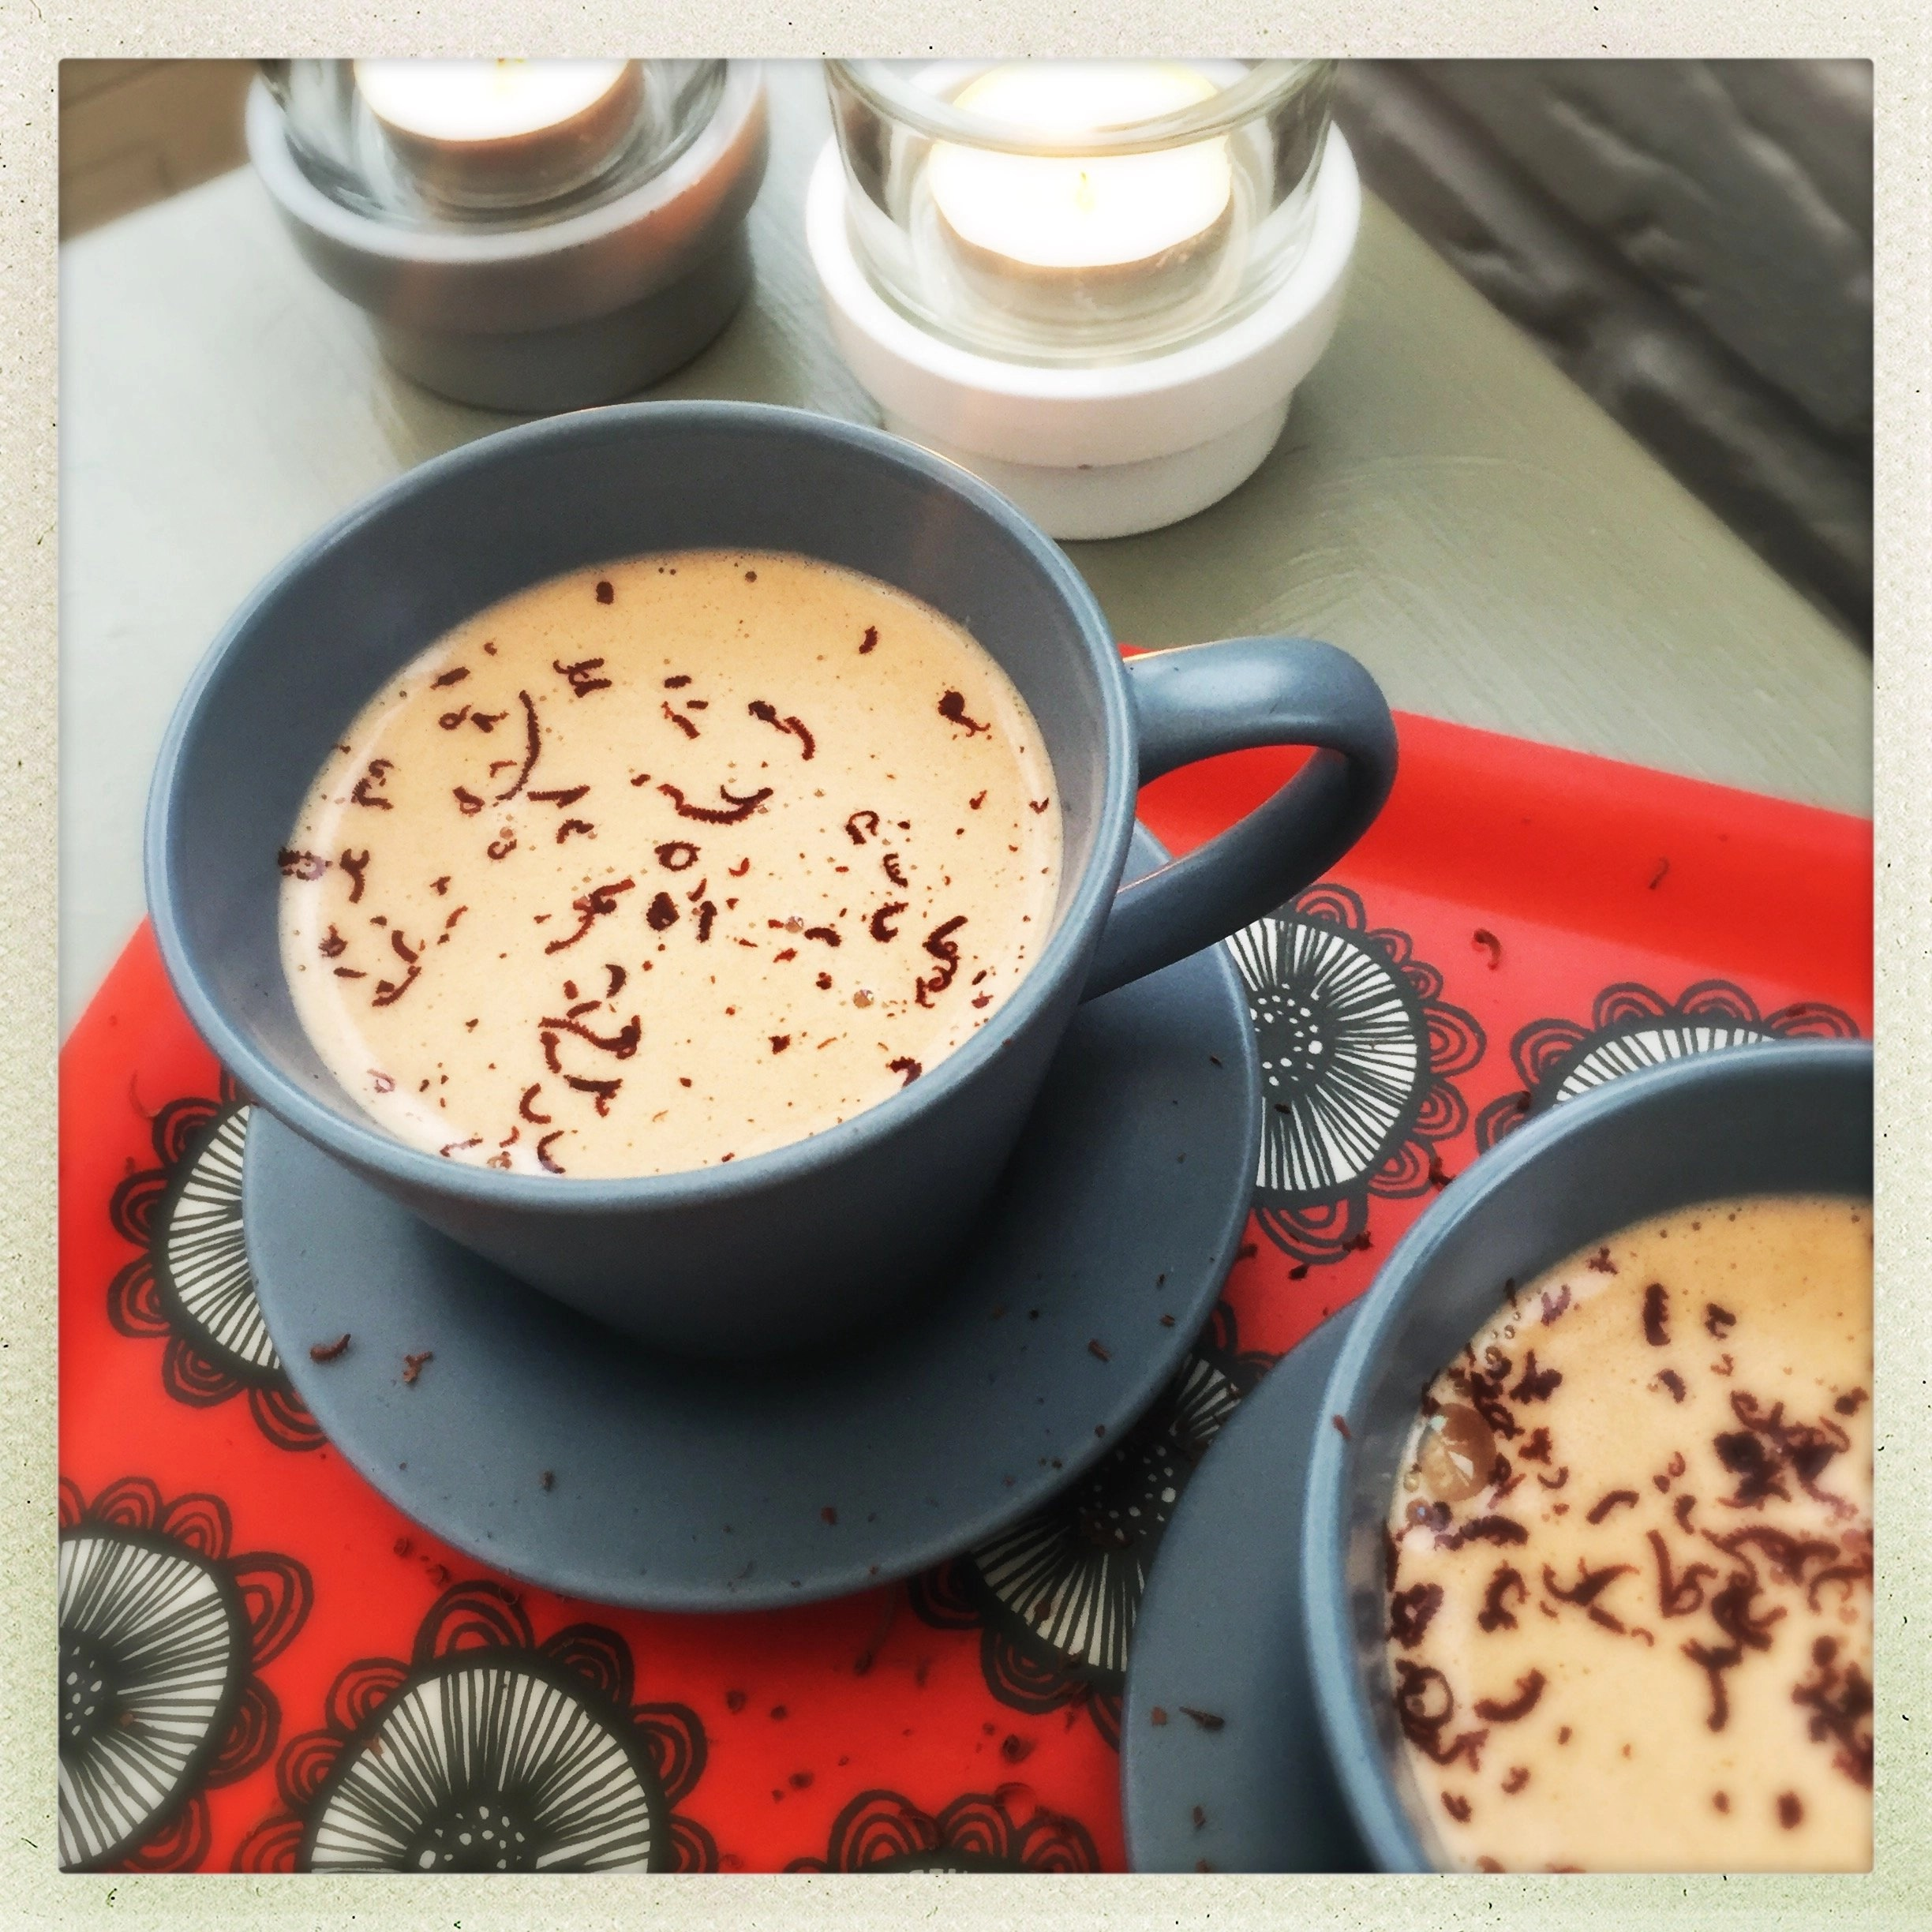 recipes for twenty super delicious hot drinks to warm you up during fall or winter!